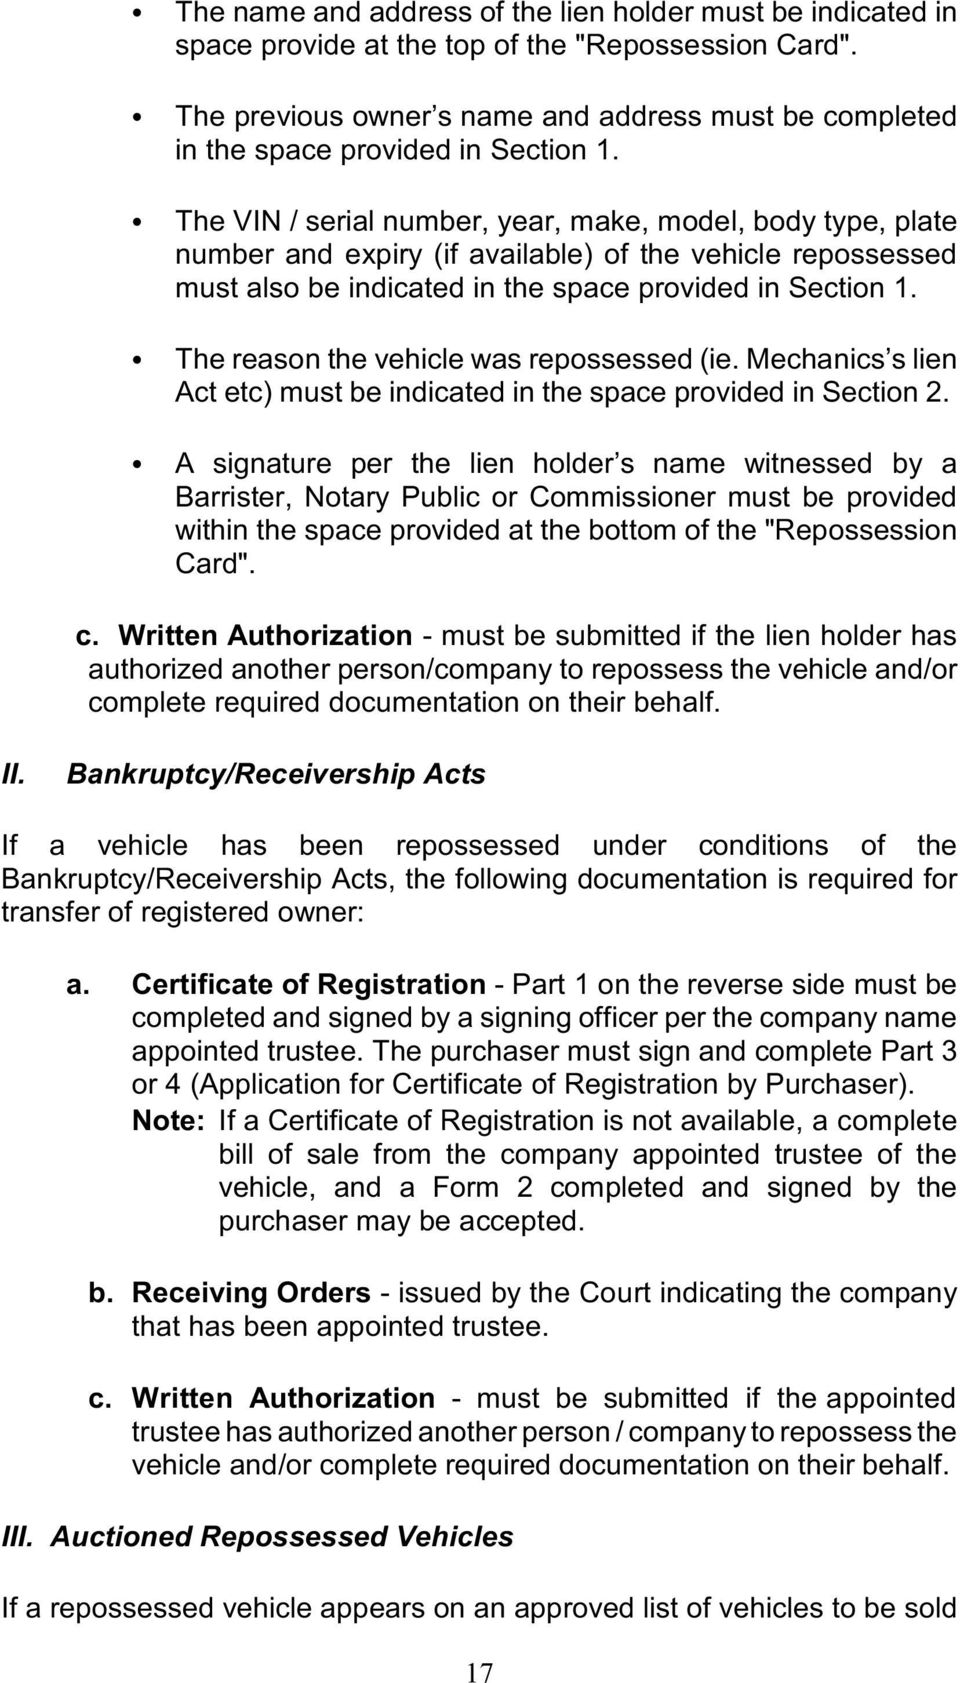 application to transfer the registration of this vehicle form act